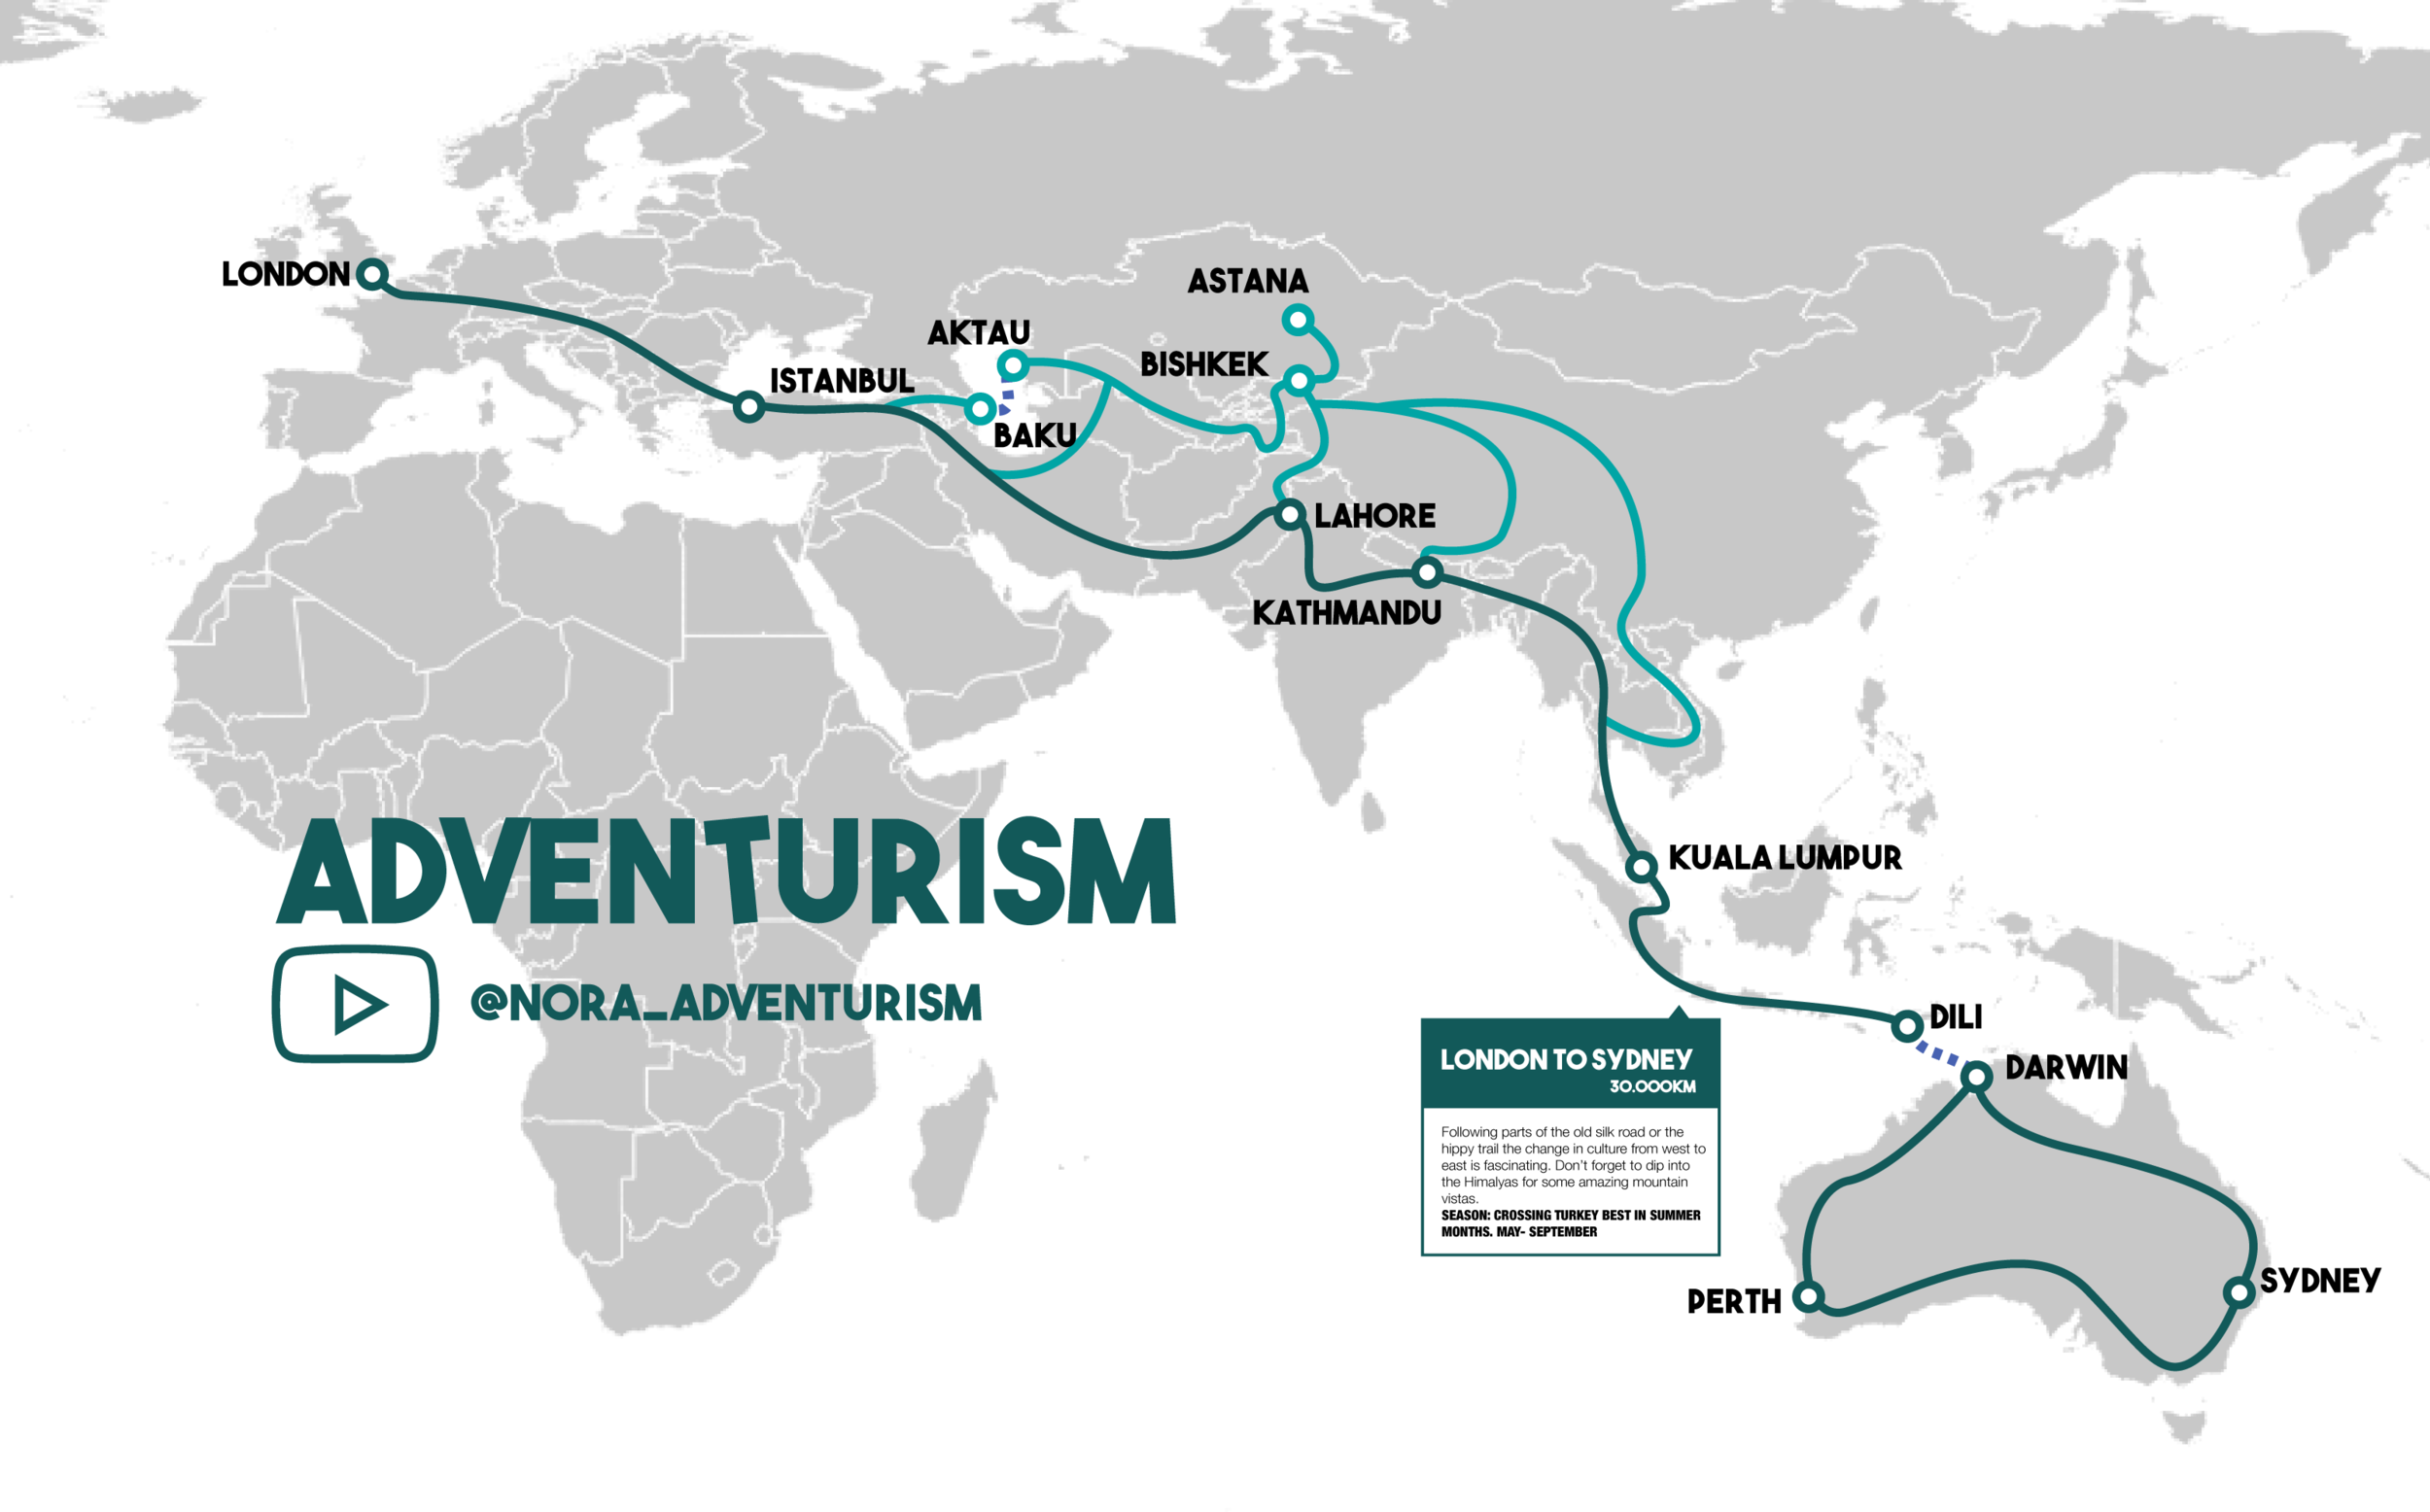 The route that takes you from the Western world into Eastern culture and back.